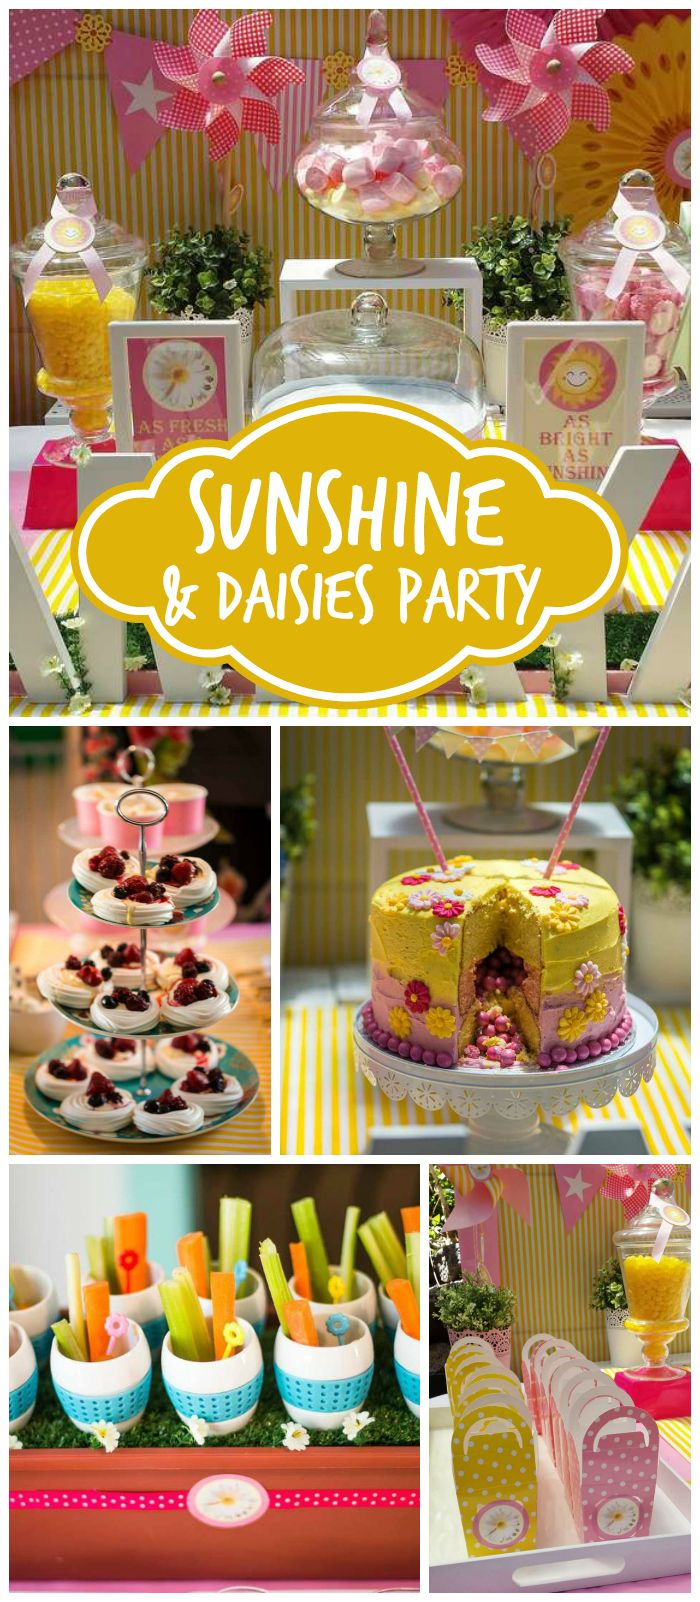 A sunshine and daisies birthday party with a beautiful pink and yellow dessert table and a pinata cake! See more party planning ideas at CatchMyParty.com!